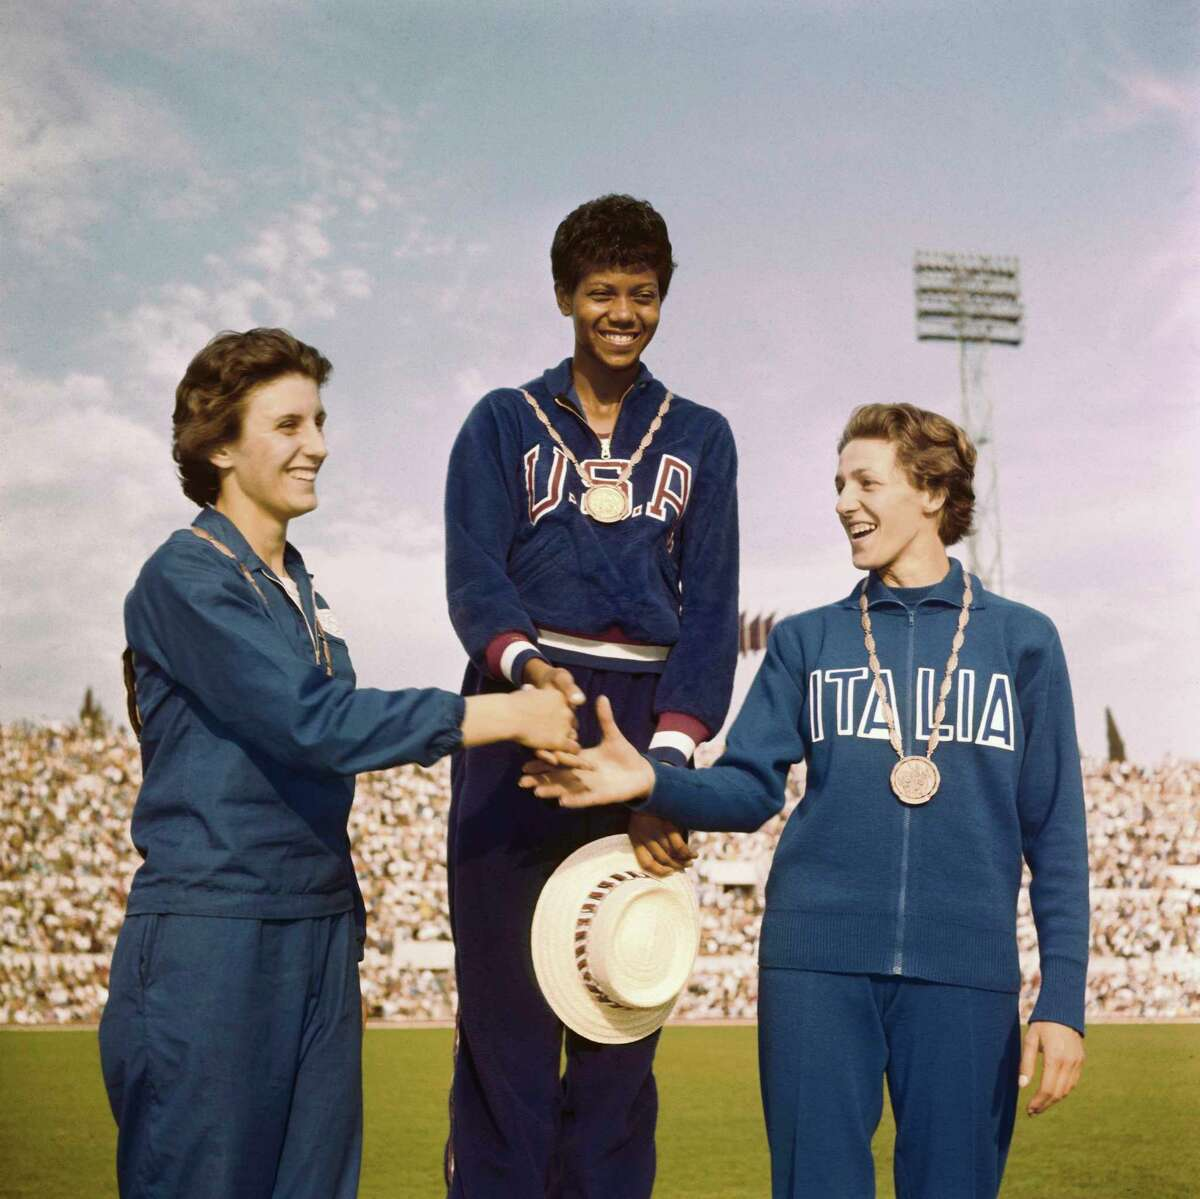 The three winners of the women's 100 meters received their medals, standing on victory podium:first place Wilma Rudolph of U.S.A. (middle), second place Dorothy Hyman of Great Britain (left) and third place Guiseppina Leone of Italy (right).(Courtesy photo/Getty Images)